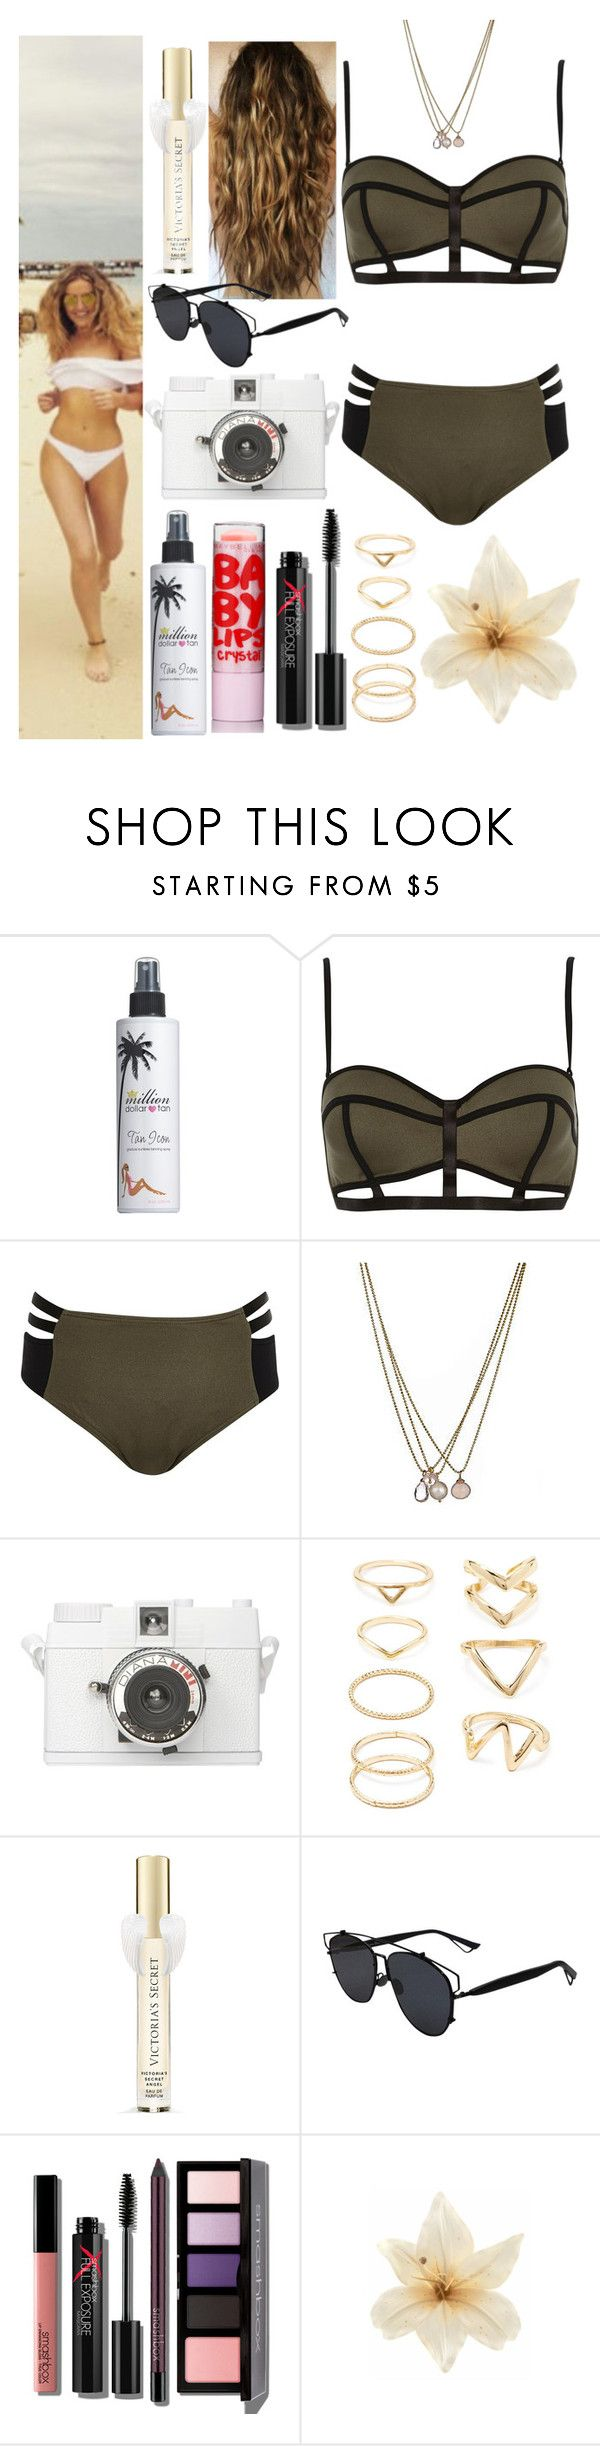 """""""Holidays with Perrie in the Maldives"""" by zandramalik ❤ liked on Polyvore featuring Million Dollar Tan, River Island, Lionette, Forever 21, Victoria's Secret, Christian Dior, Smashbox and Clips"""